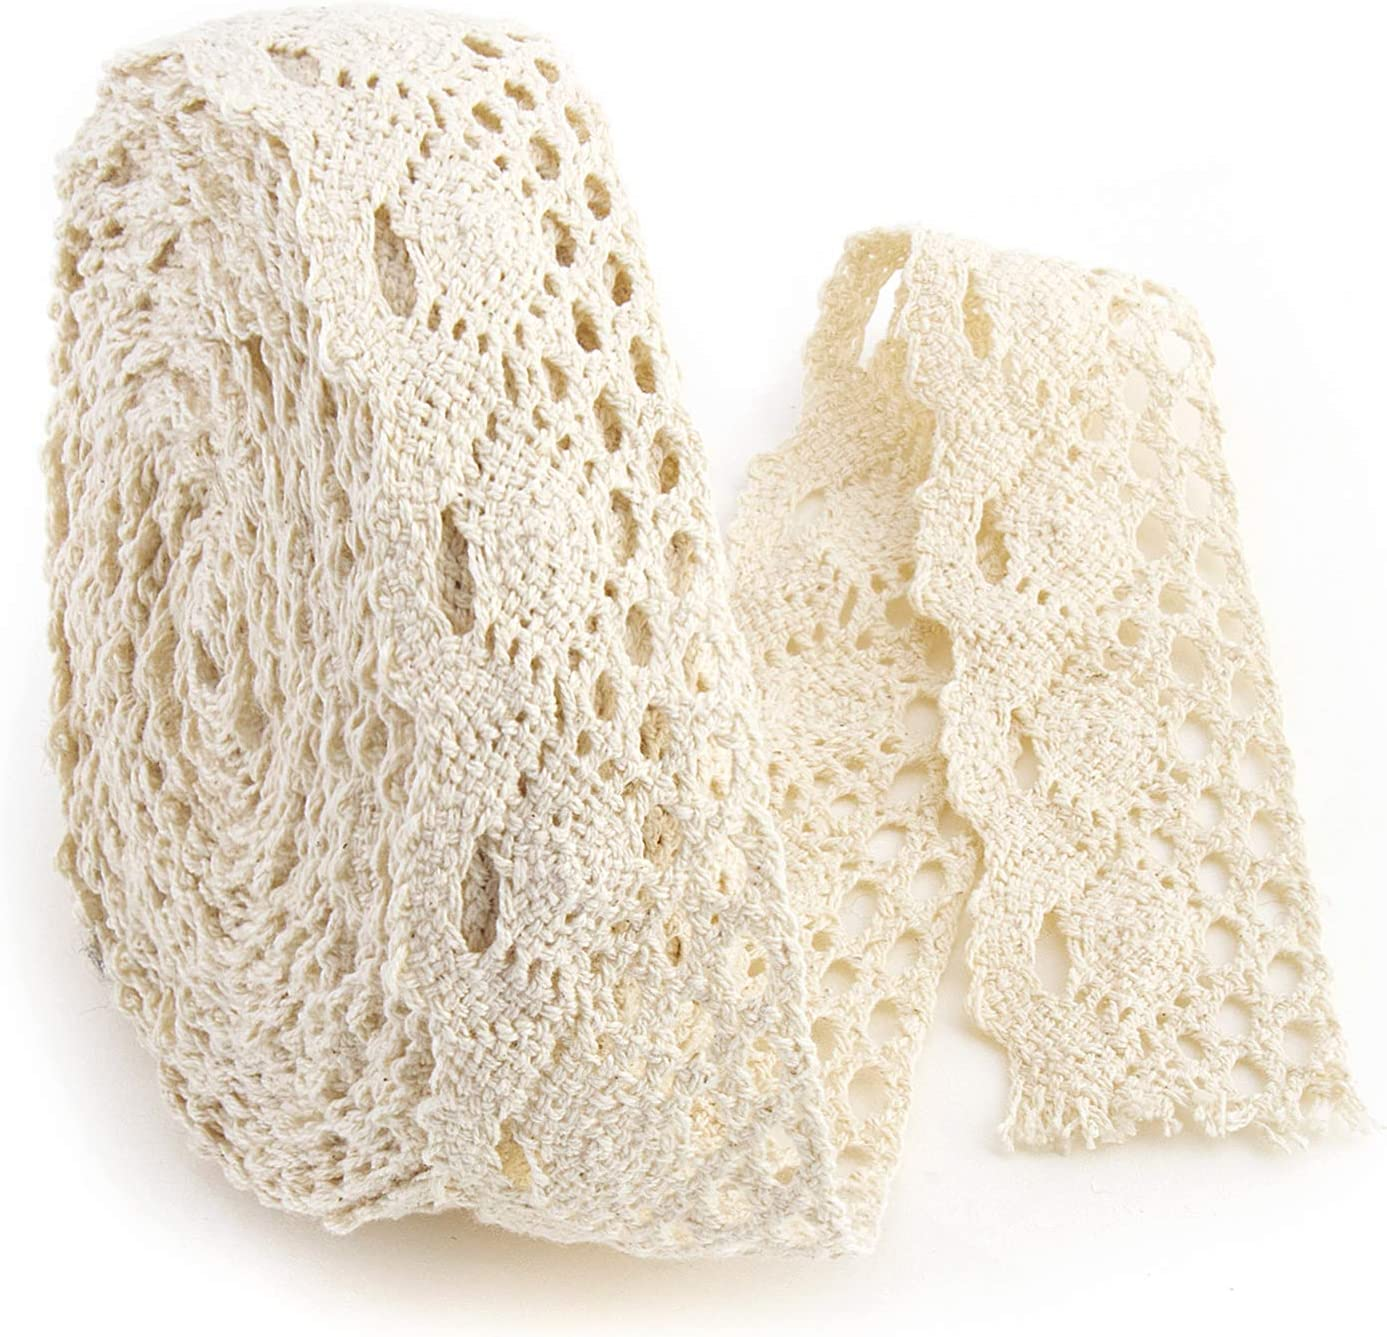 2# IDONGCAI 0.58 Wide 25 Yards//lot Cotton Cotton Lace Ribbon Edge Trim DIY Material Home Furnishing Garment Accessories DIY Material Natural Color